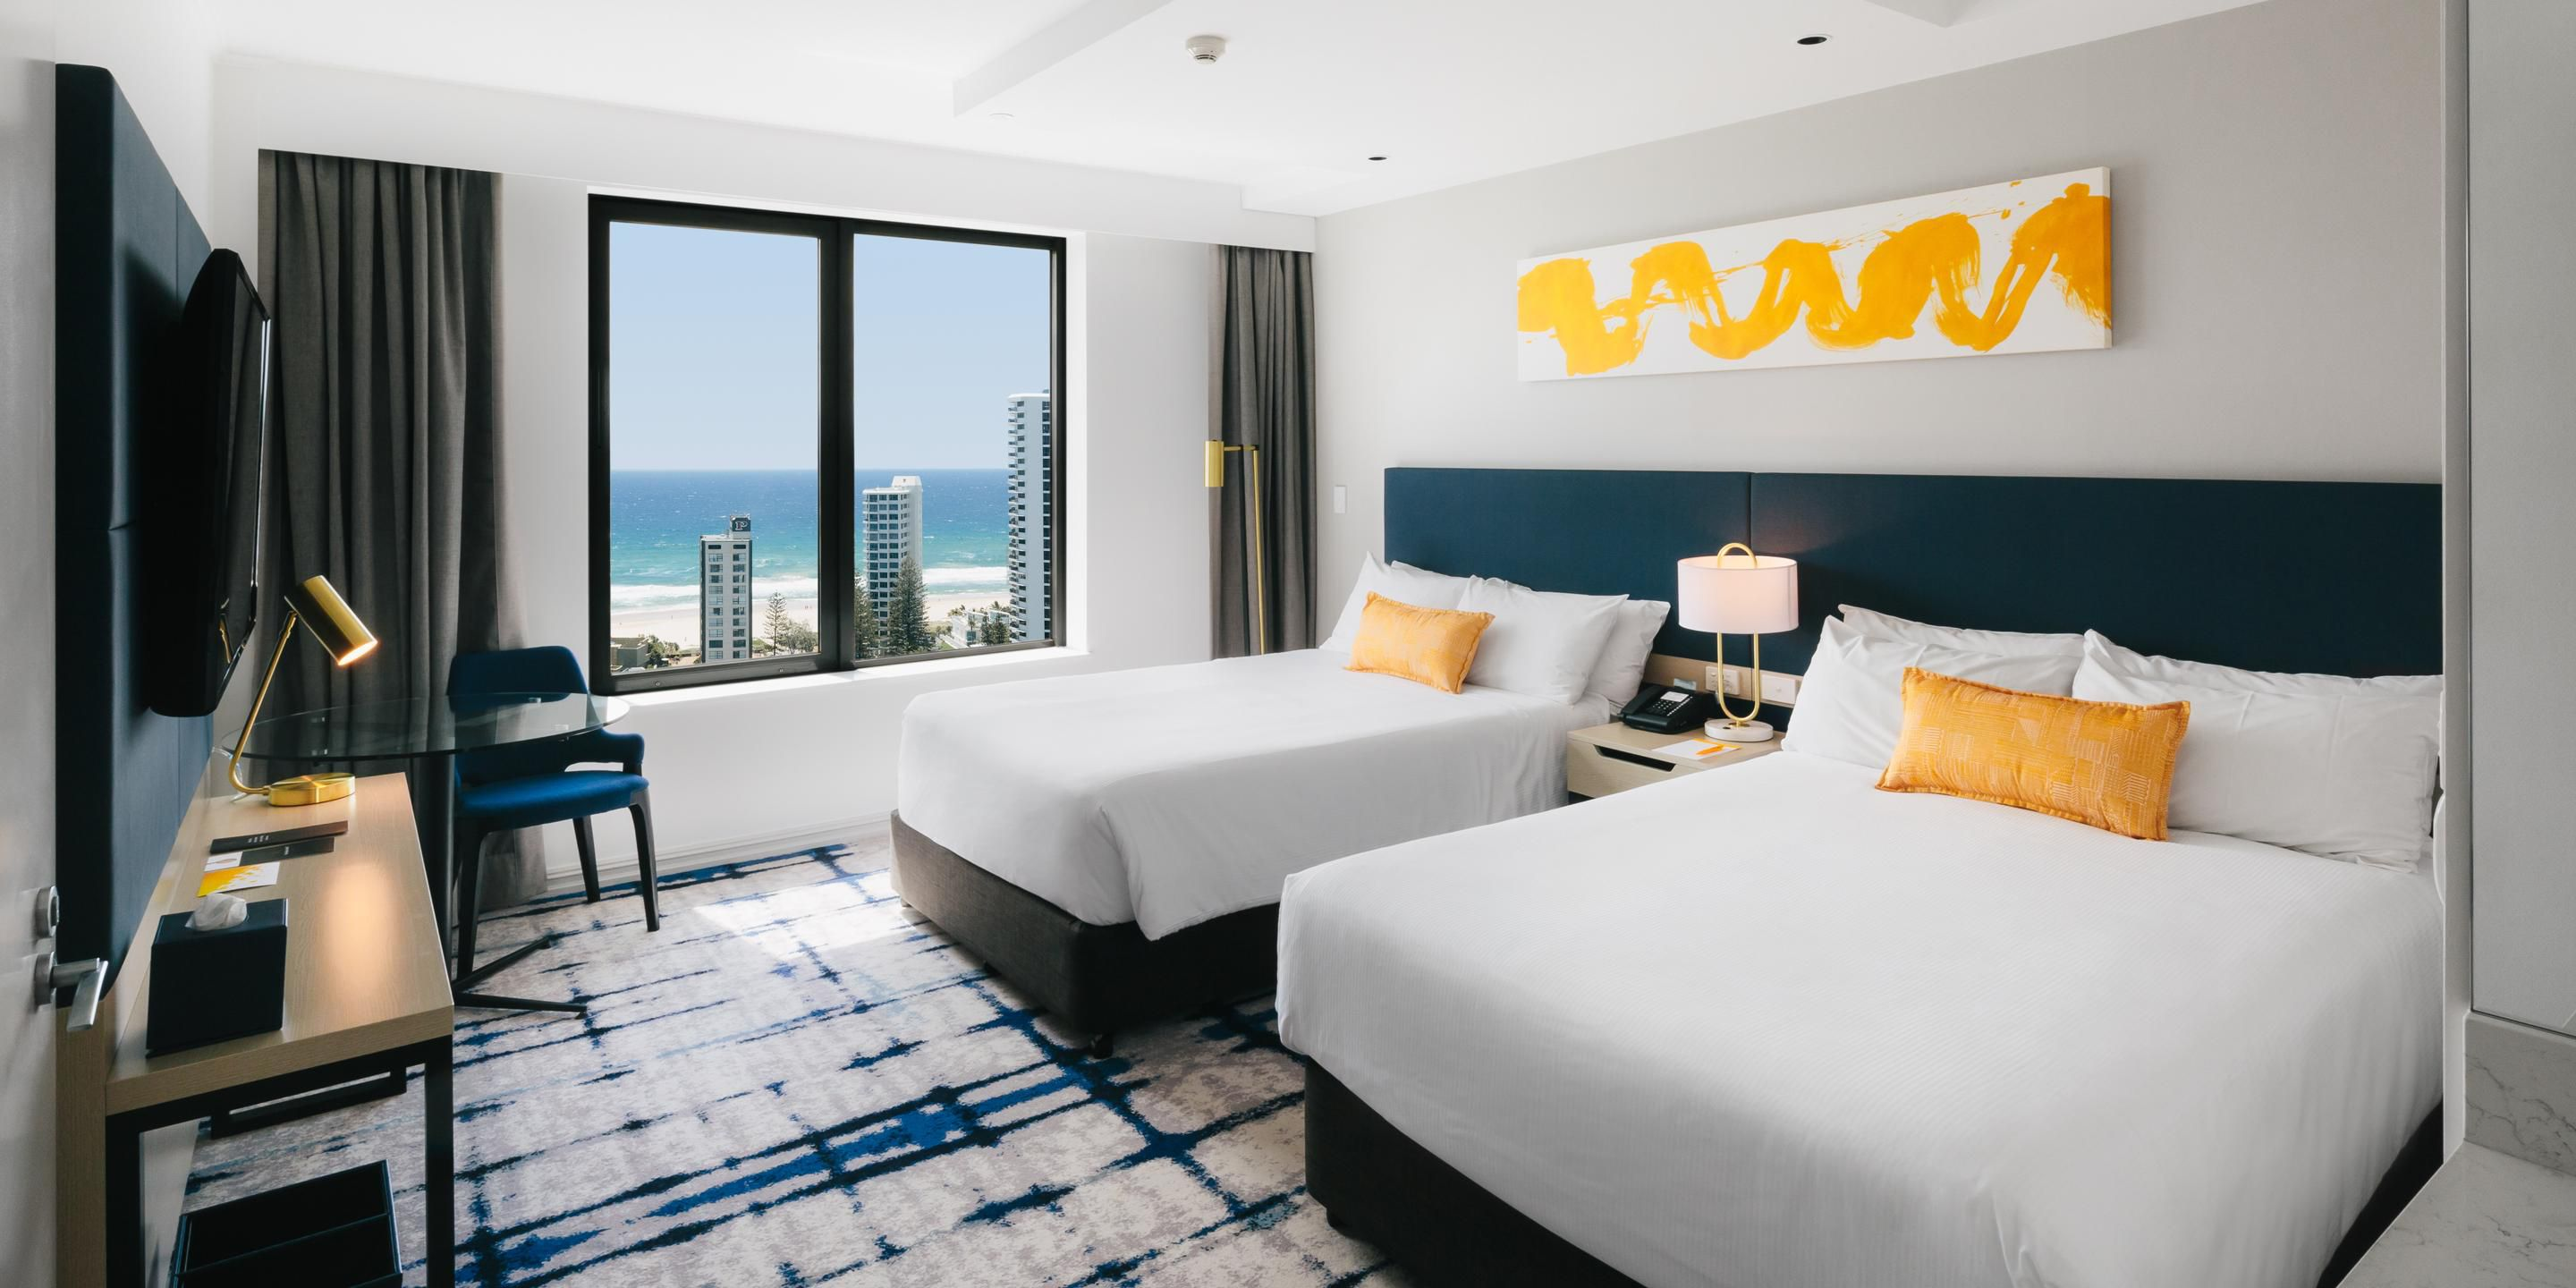 Deluxe room twin beds with Pacific ocean views